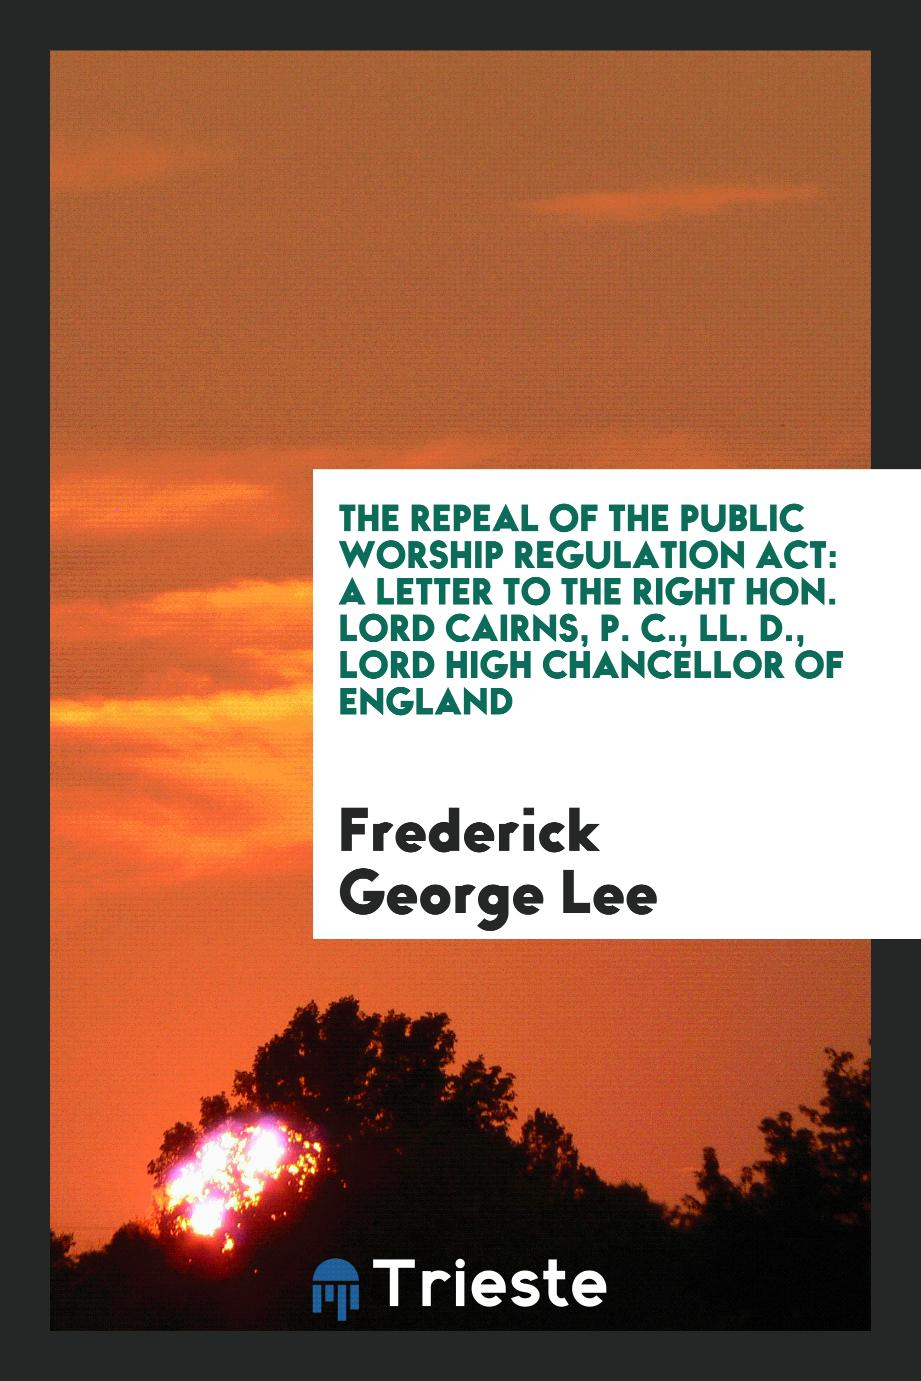 The Repeal of the Public Worship Regulation Act: A Letter to the Right Hon. lord Cairns, P. C., LL. D., lord high Chancellor of England